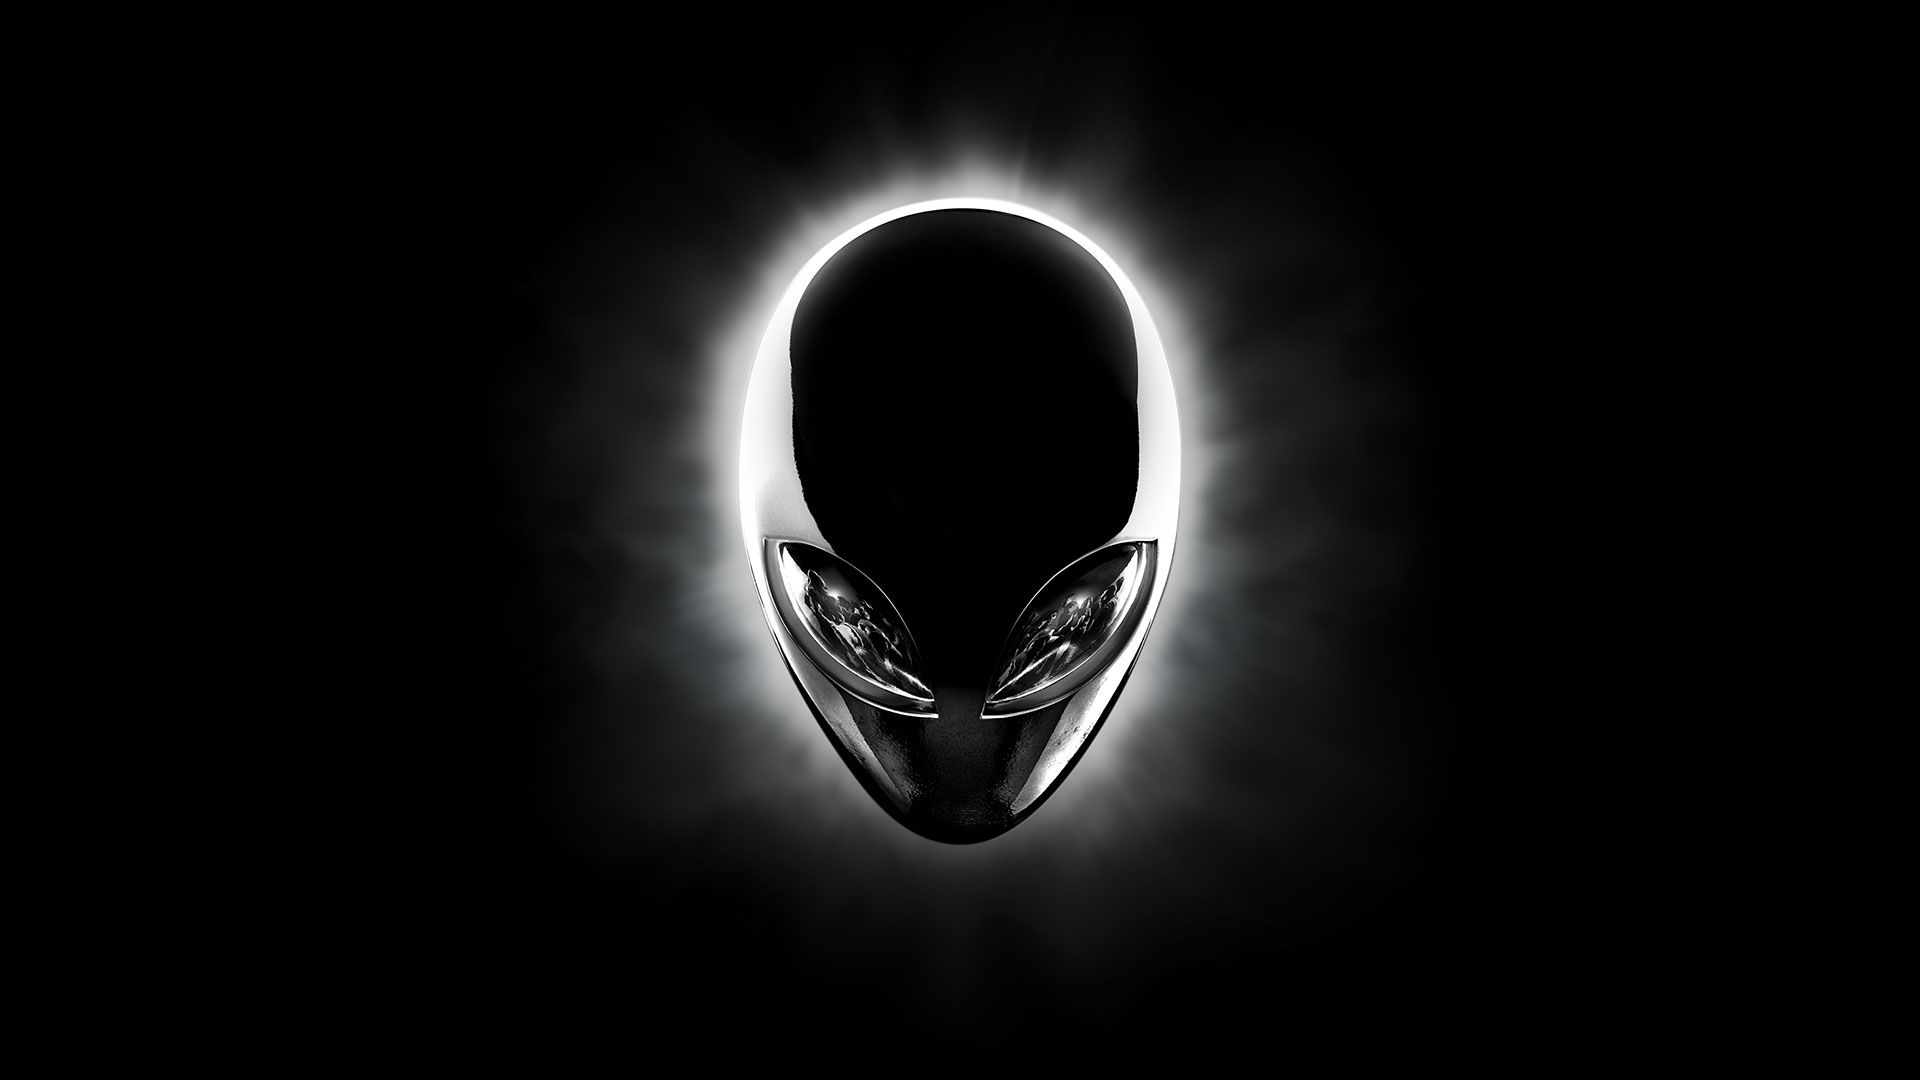 Alienware wallpapers | NotebookReview